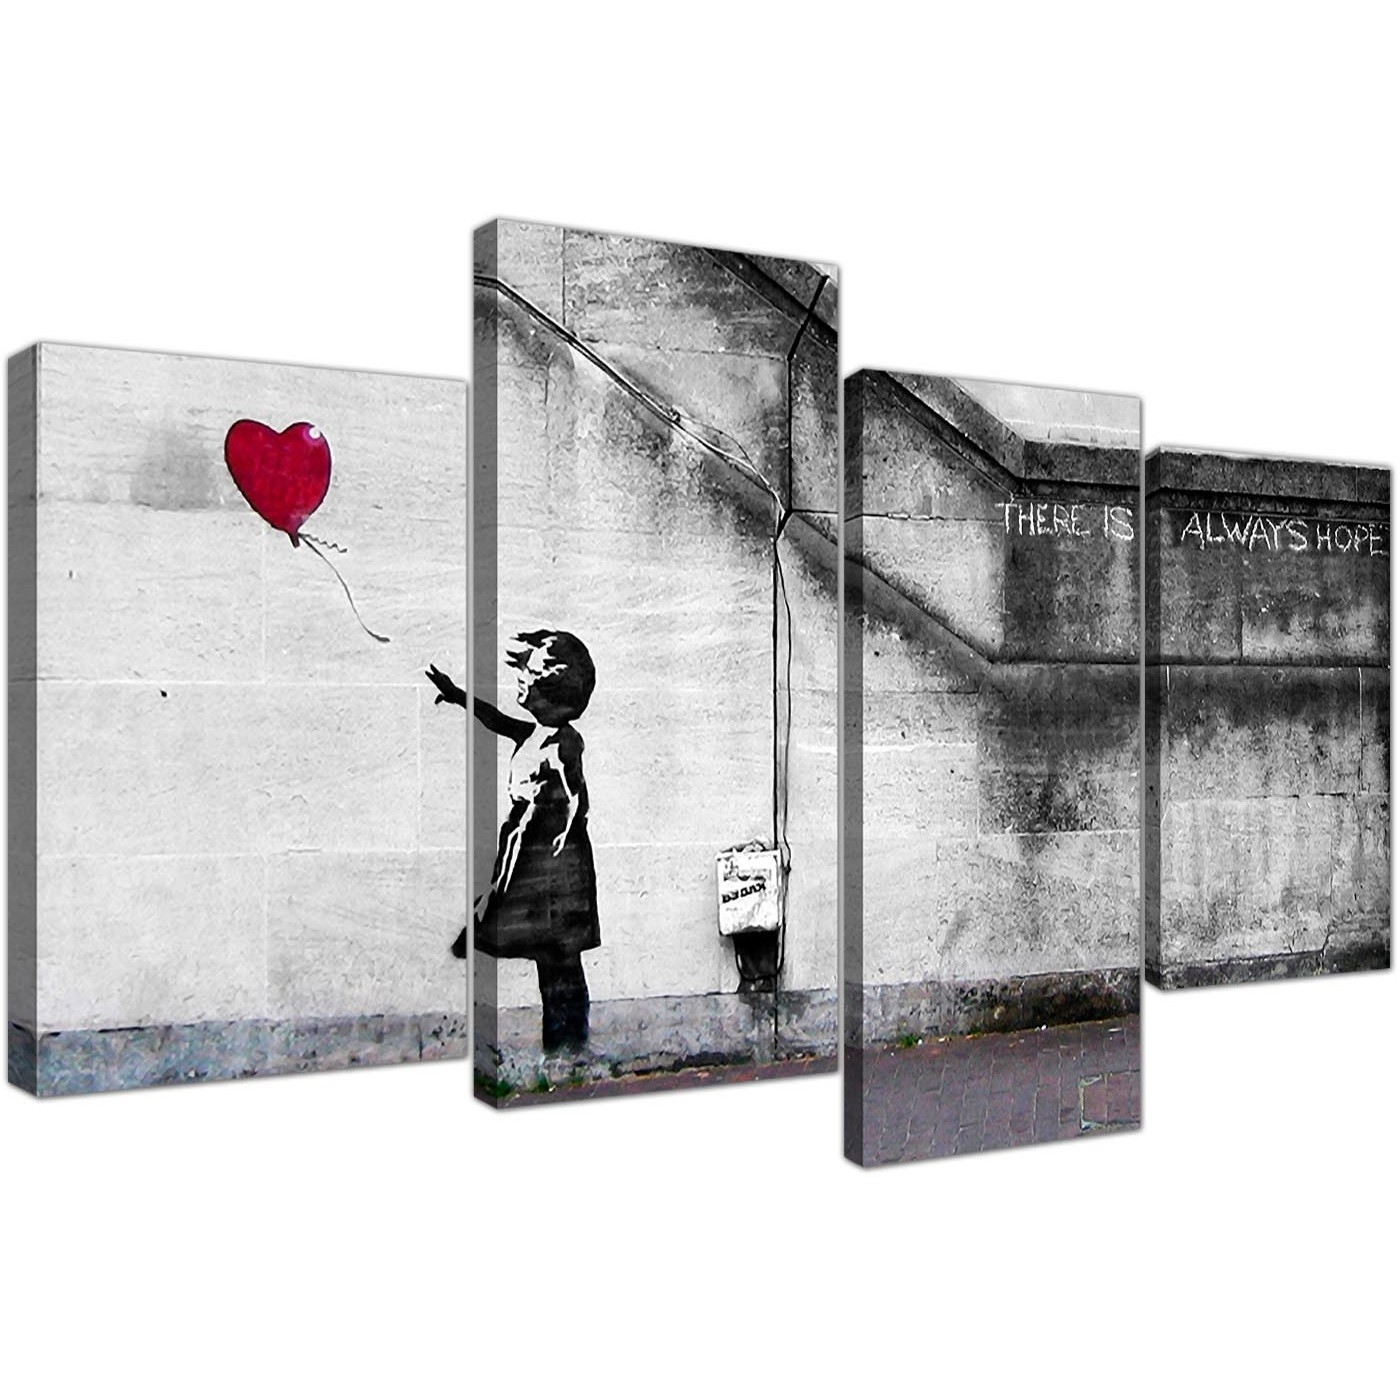 Large Banksy Canvas Prints – Balloon Girl Red Regarding Latest Red Canvas Wall Art (Gallery 13 of 15)